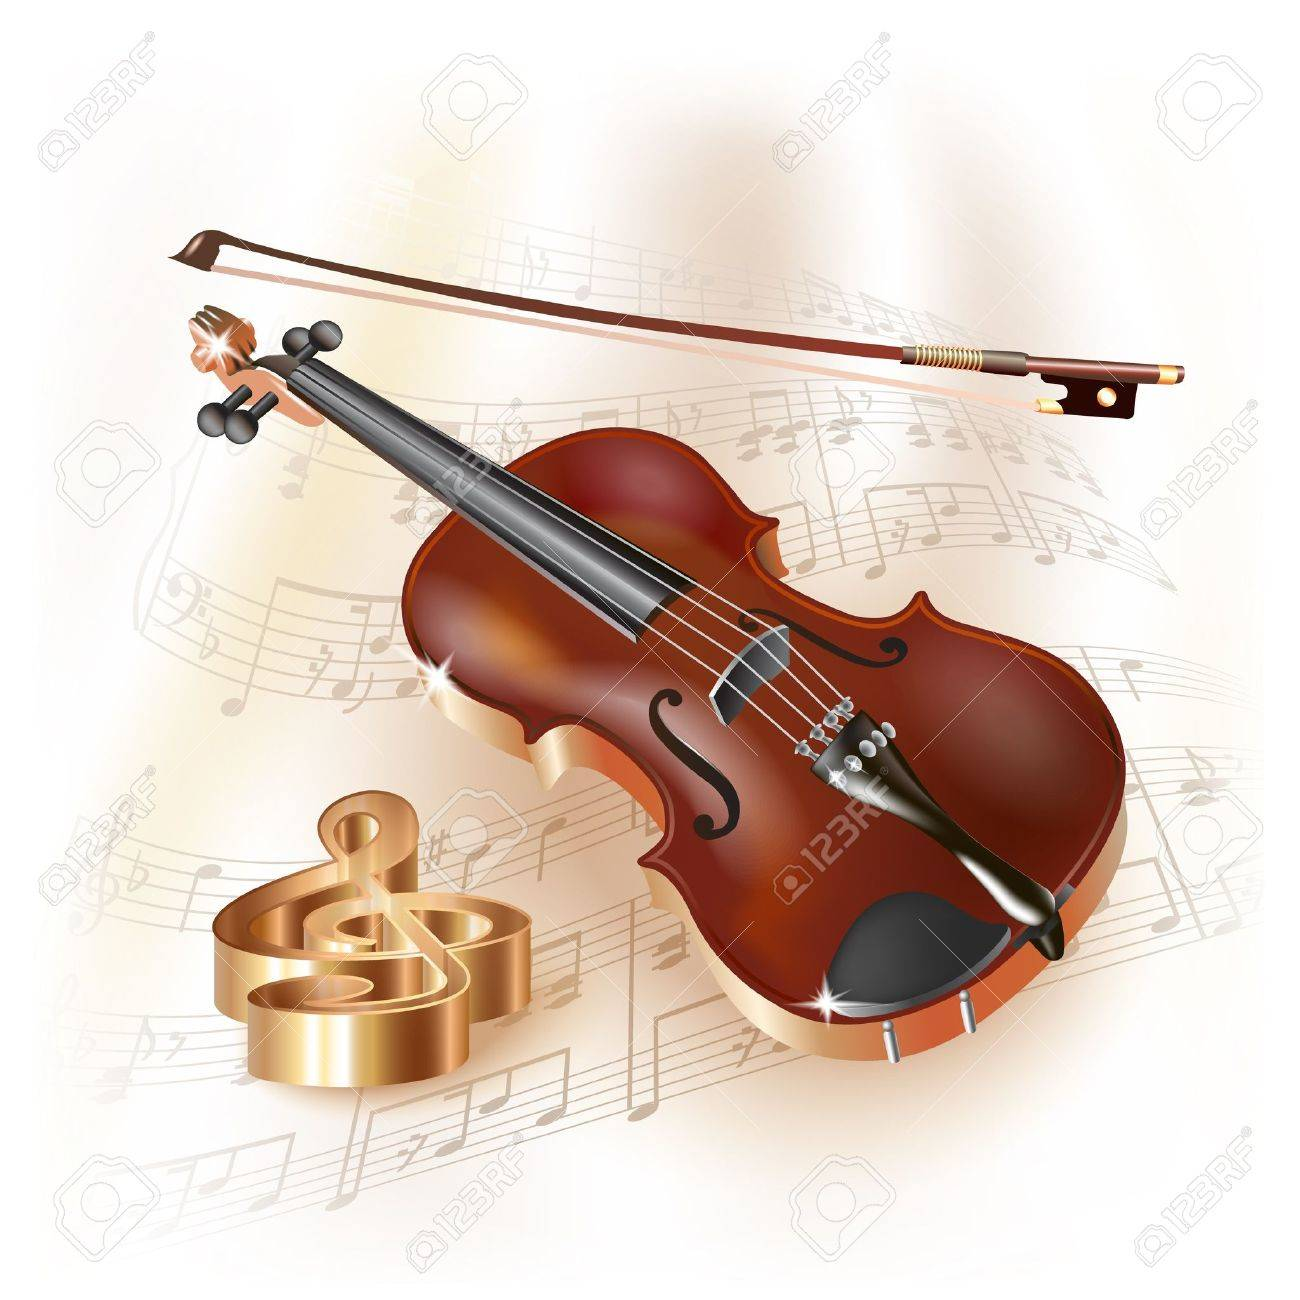 Musical series - Classical violin, isolated on white background with musical notes Stock Vector - 19127676